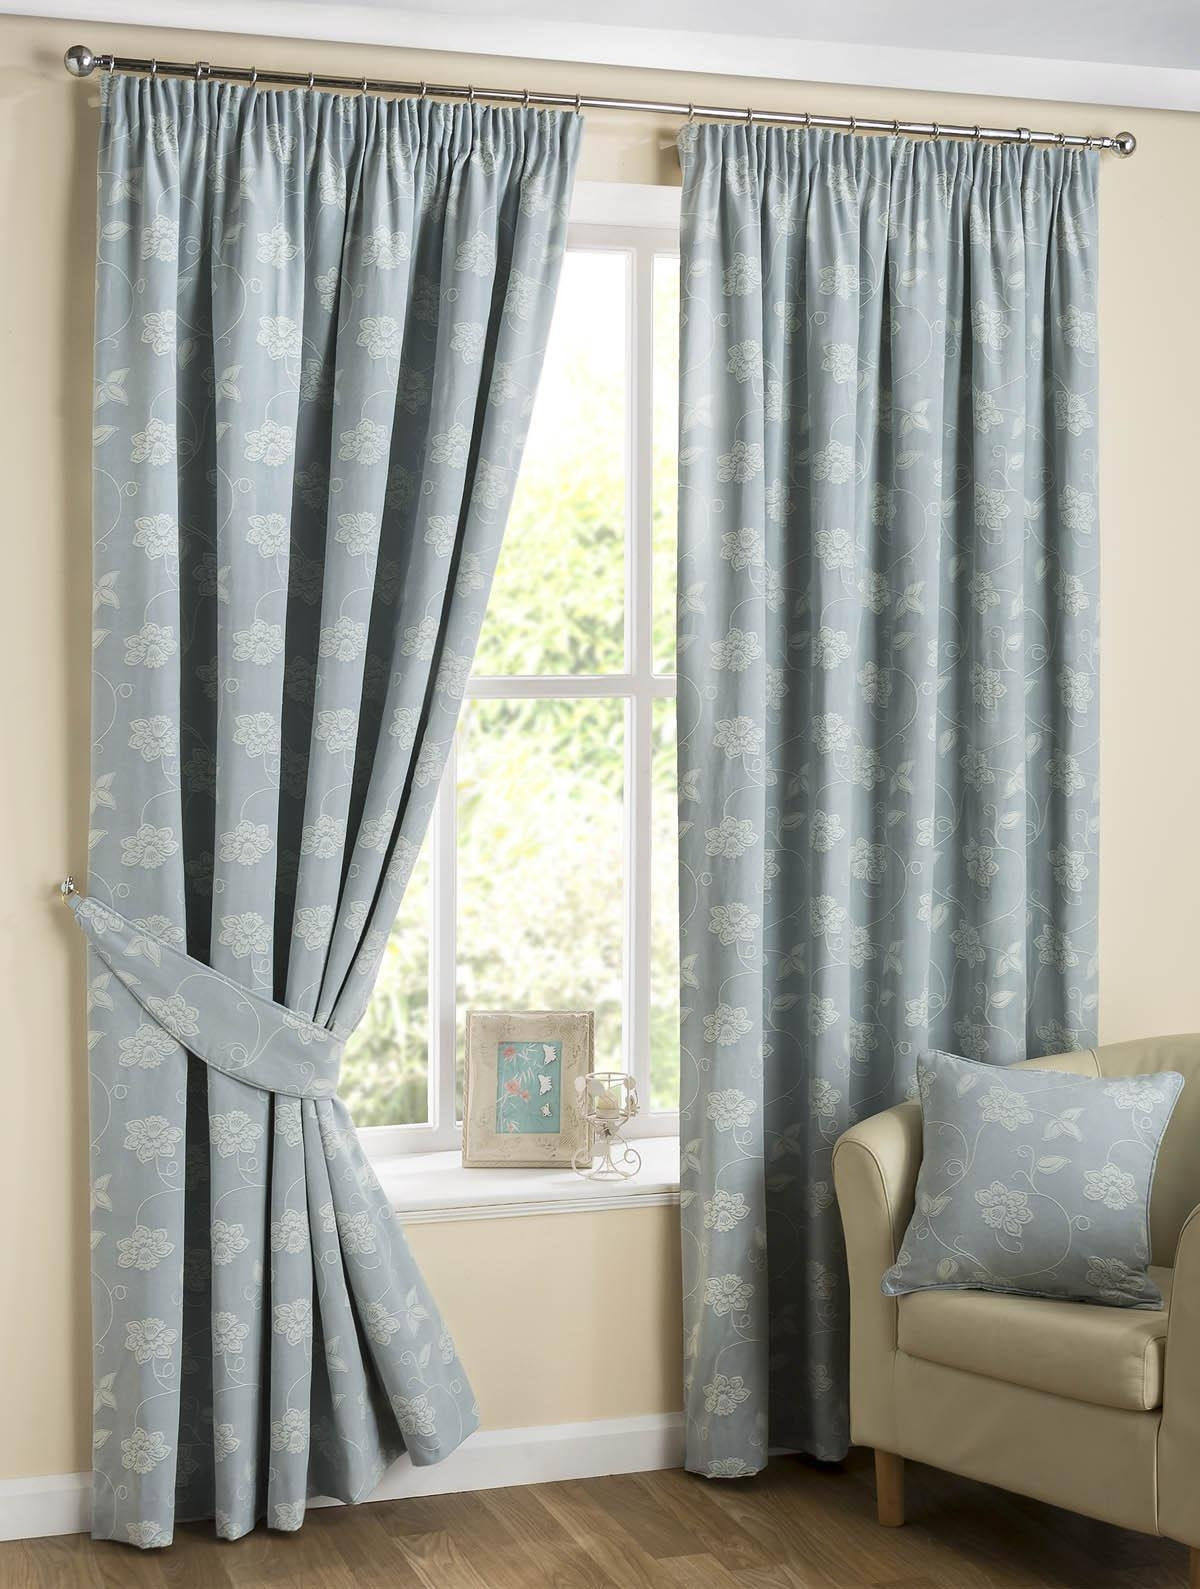 Floral Scroll Curtains Duck Egg Blue Free Uk Delivery Terrys Intended For Duck Egg Blue Striped Curtains (View 11 of 15)